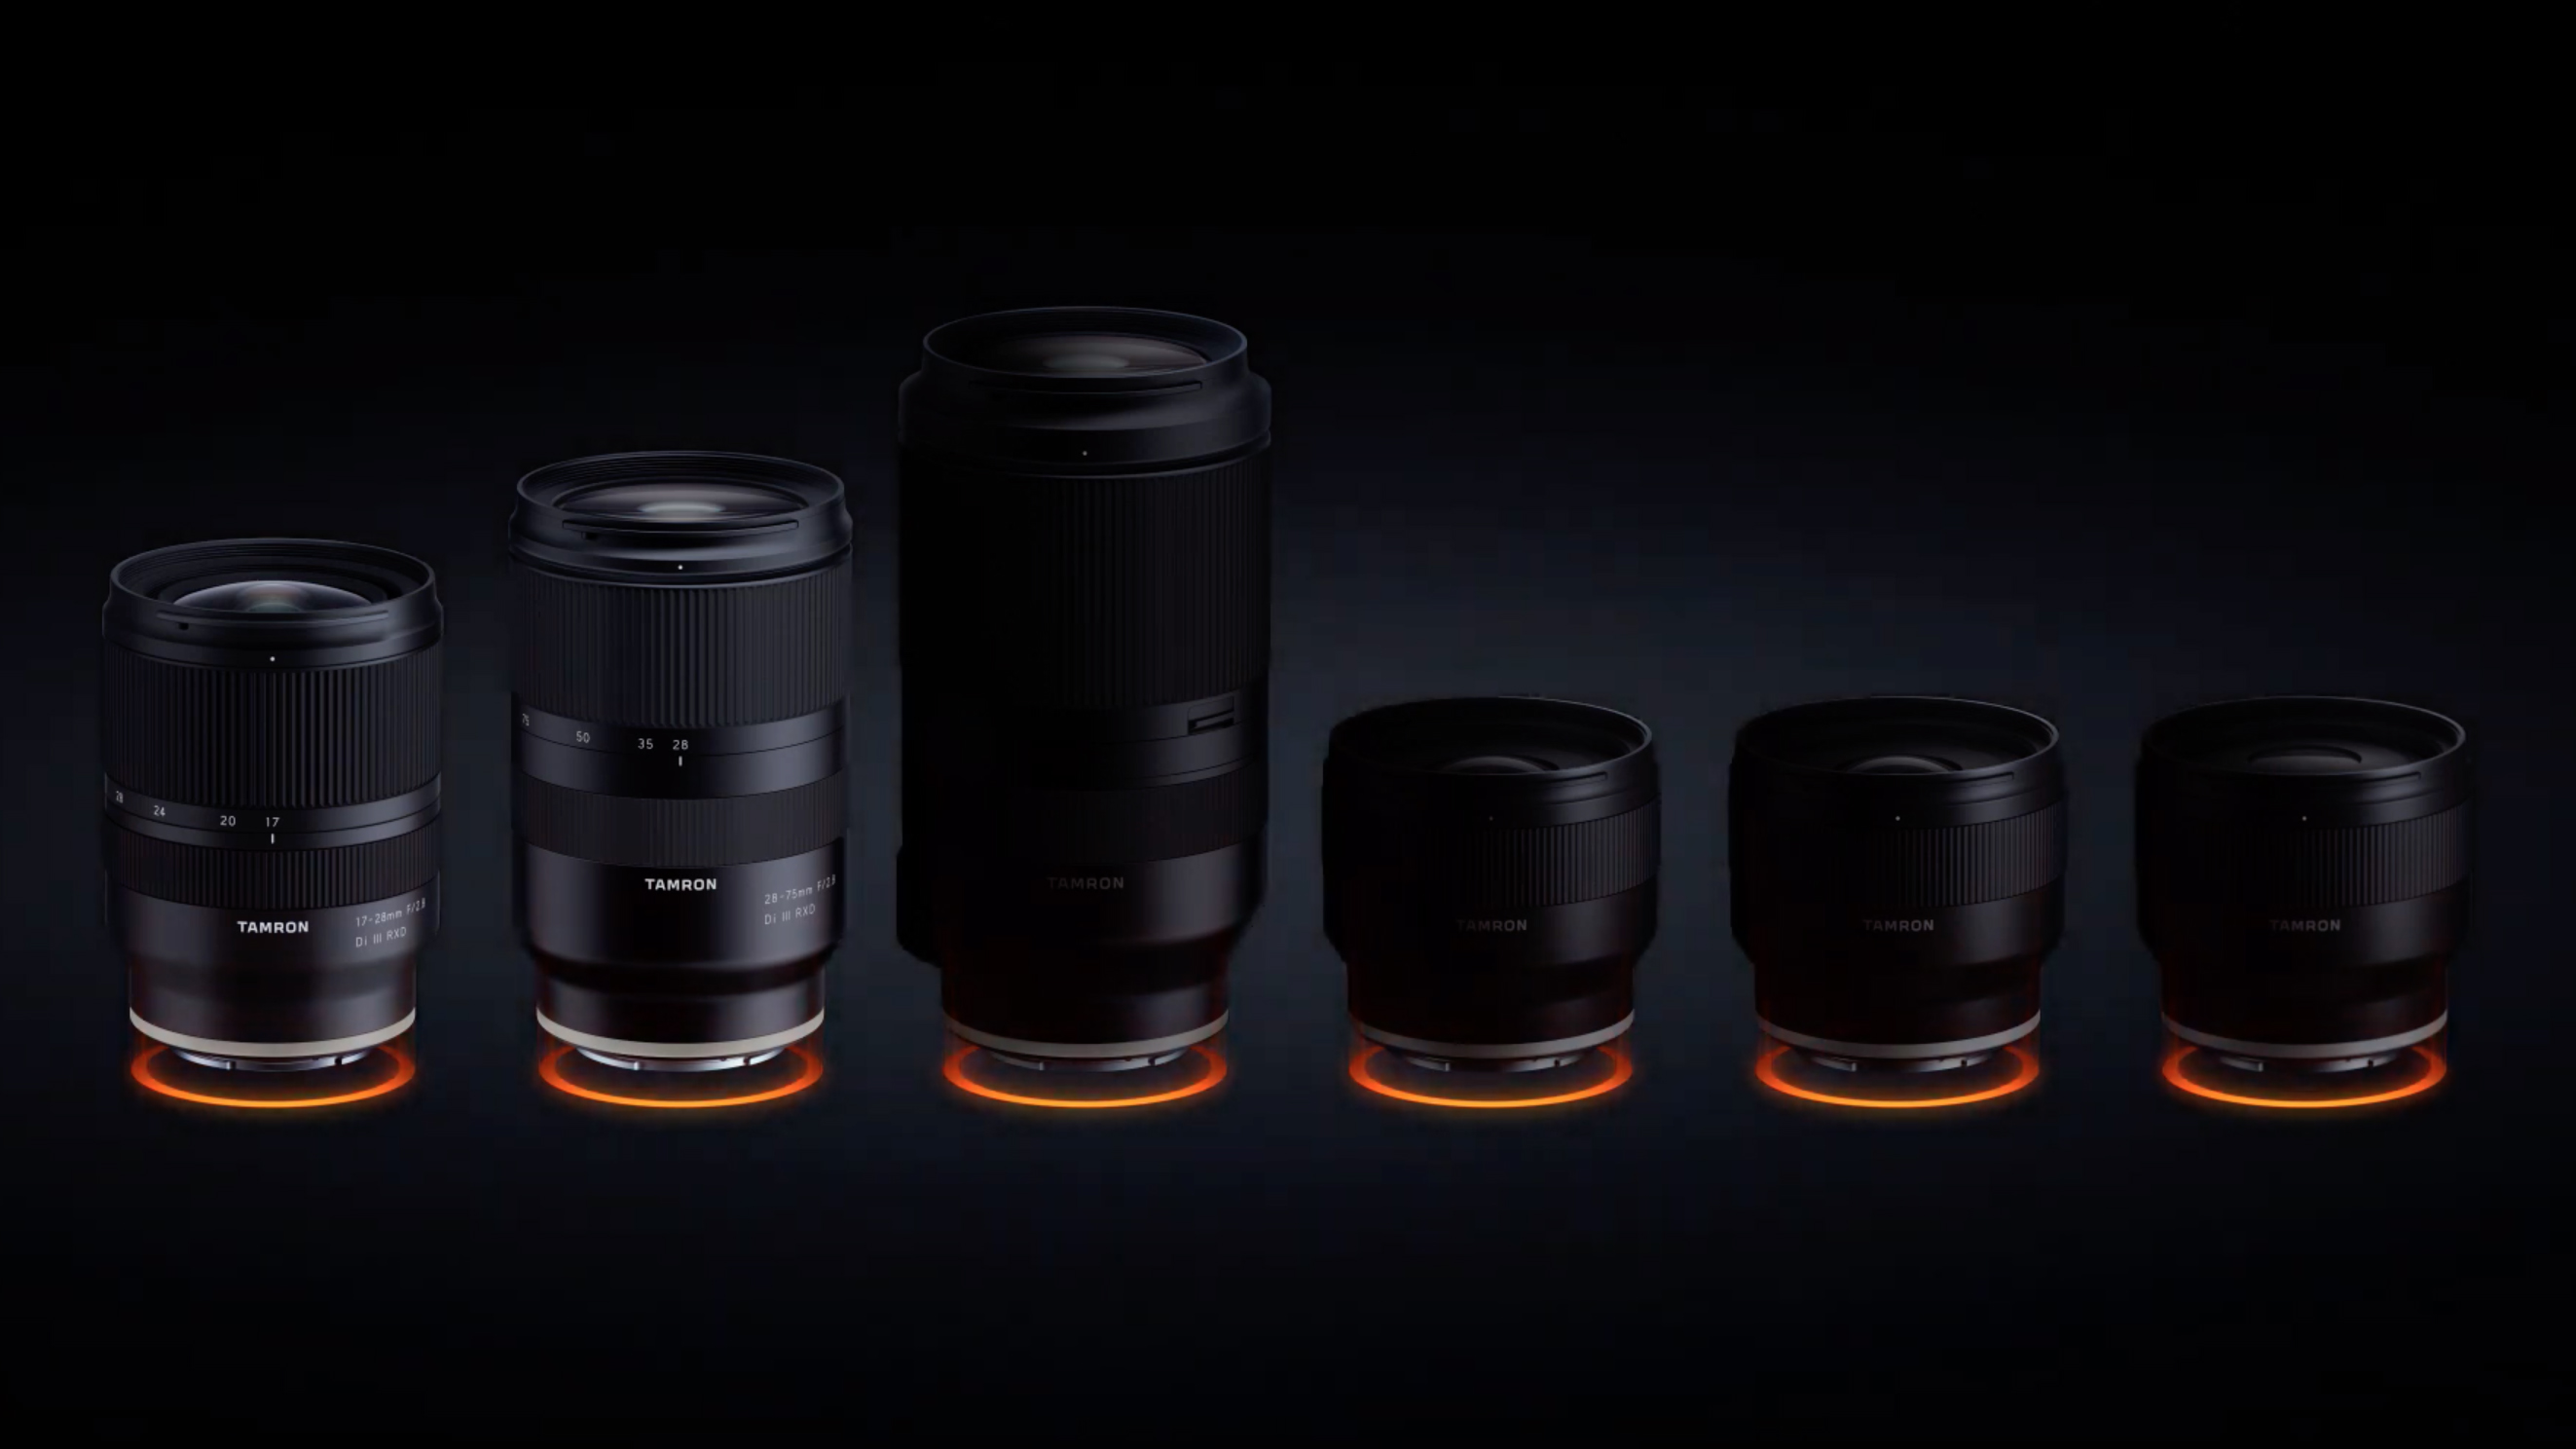 Four new full-frame Tamron lenses slated for October release – but only for Sony Alpha users?